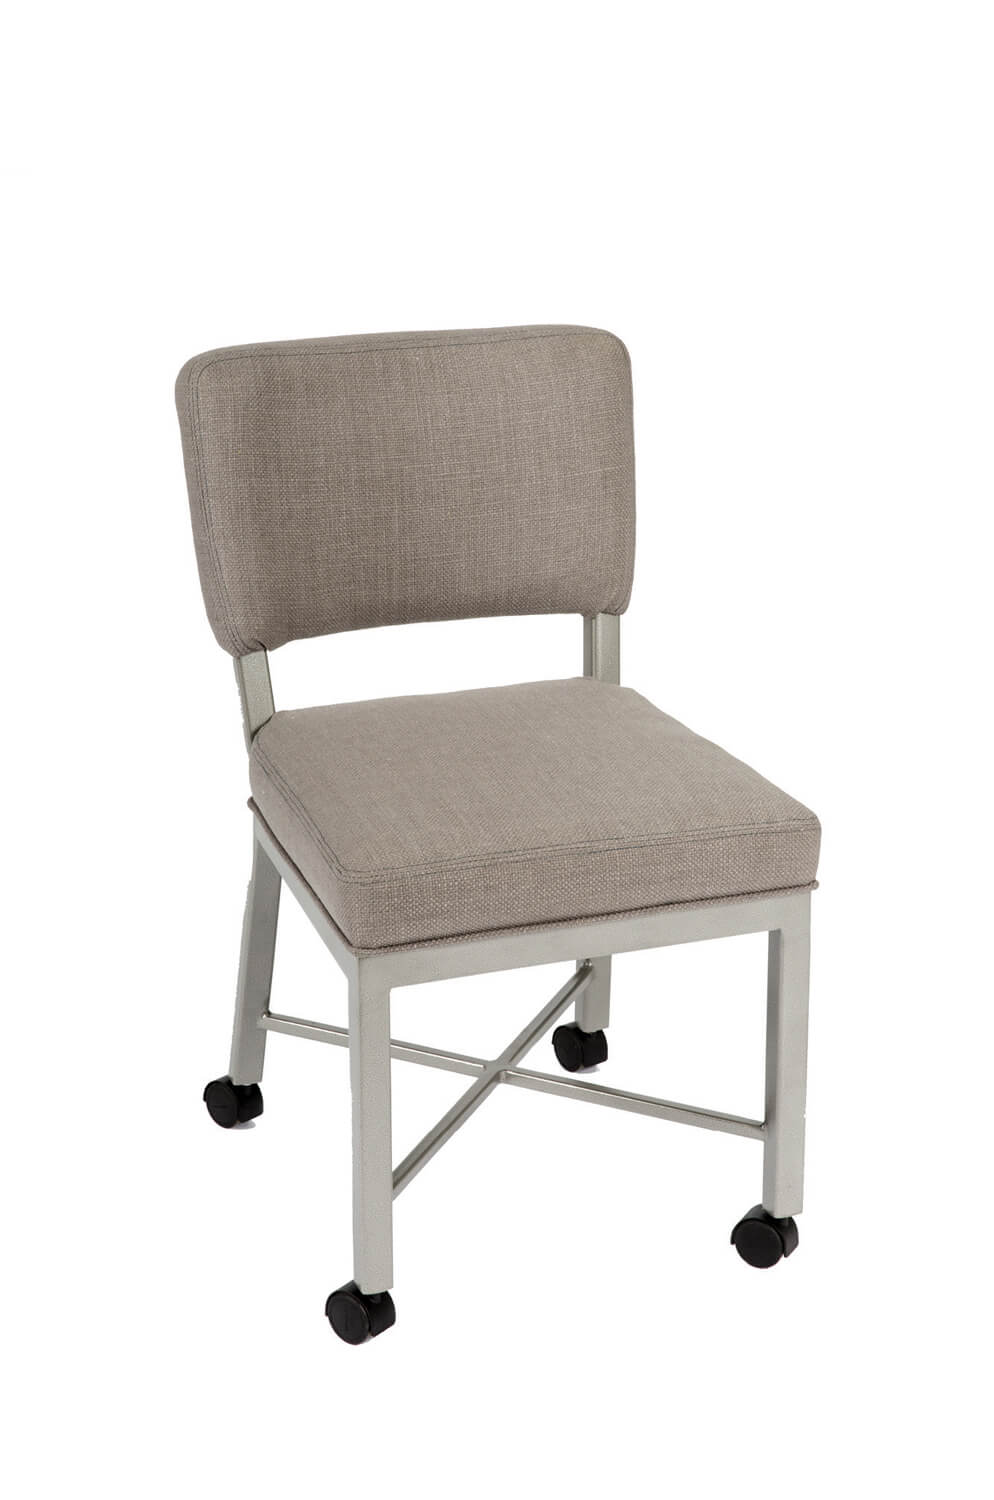 Buy Wesley Allen S Miami Modern Upholstered Dining Chair With Casters